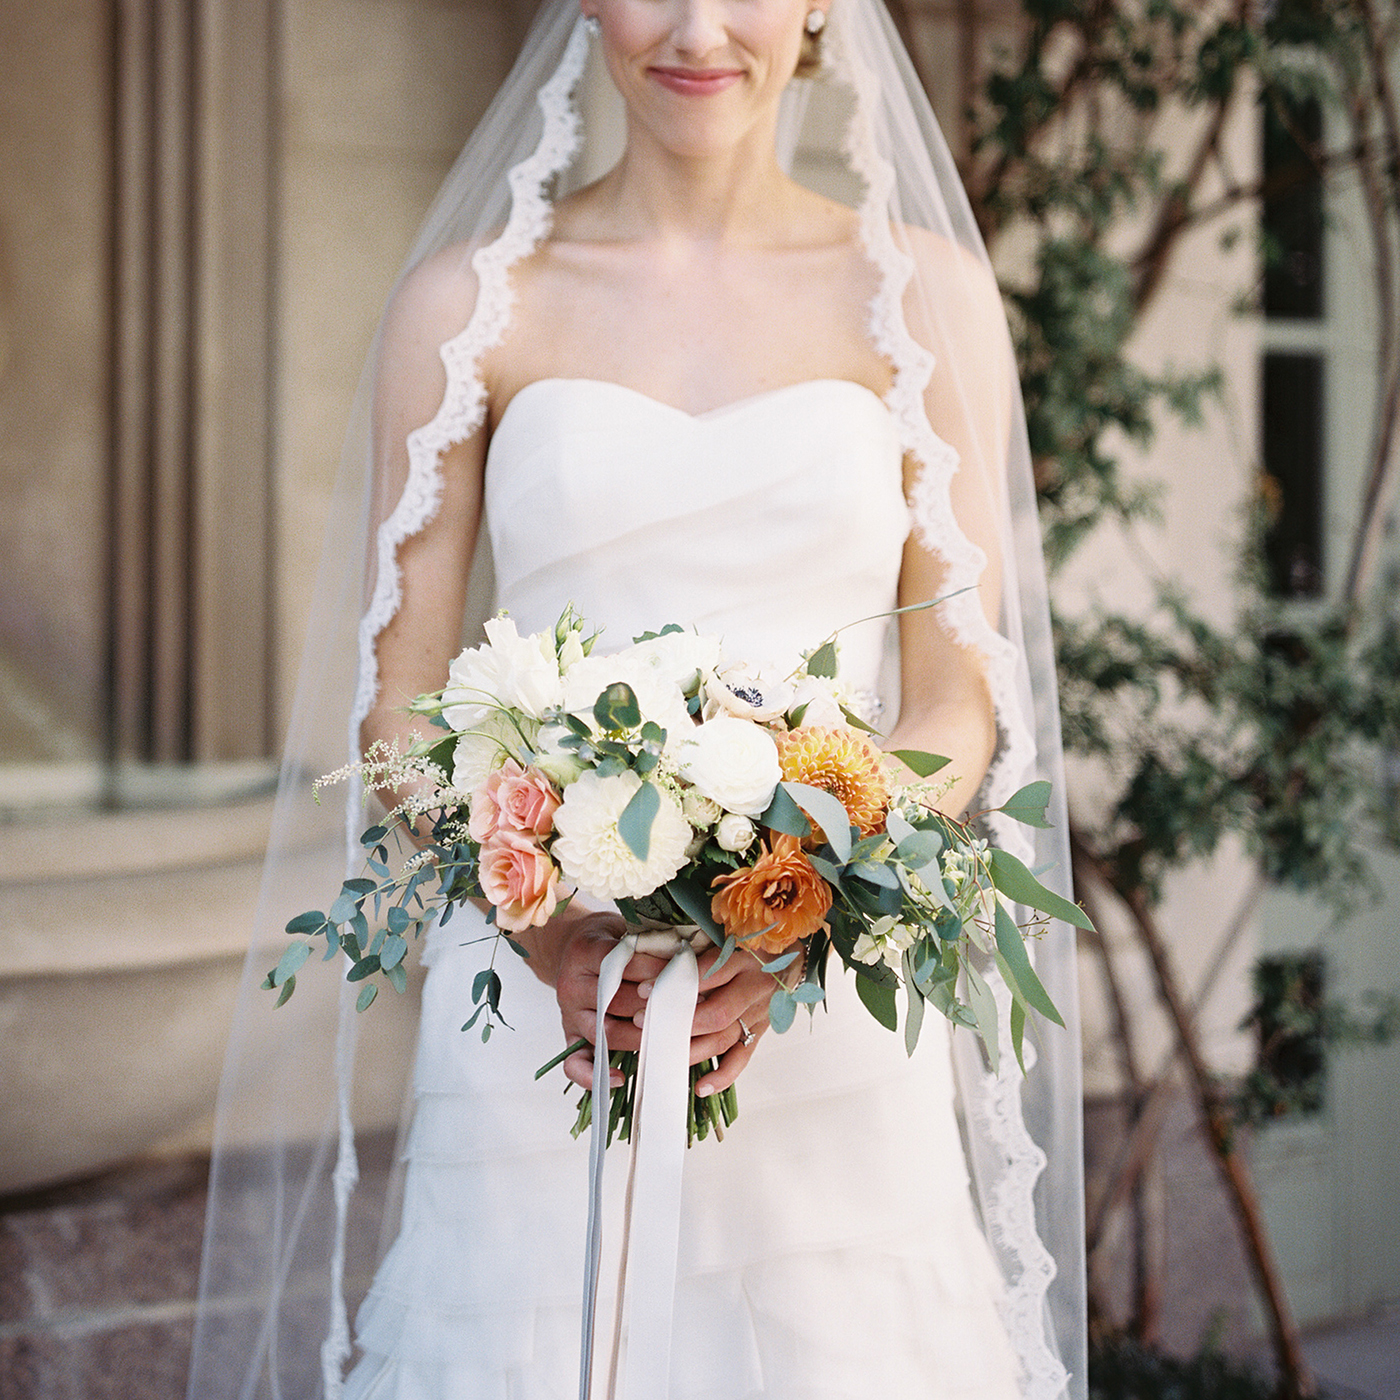 scalloped wedding decor bride with lace veil